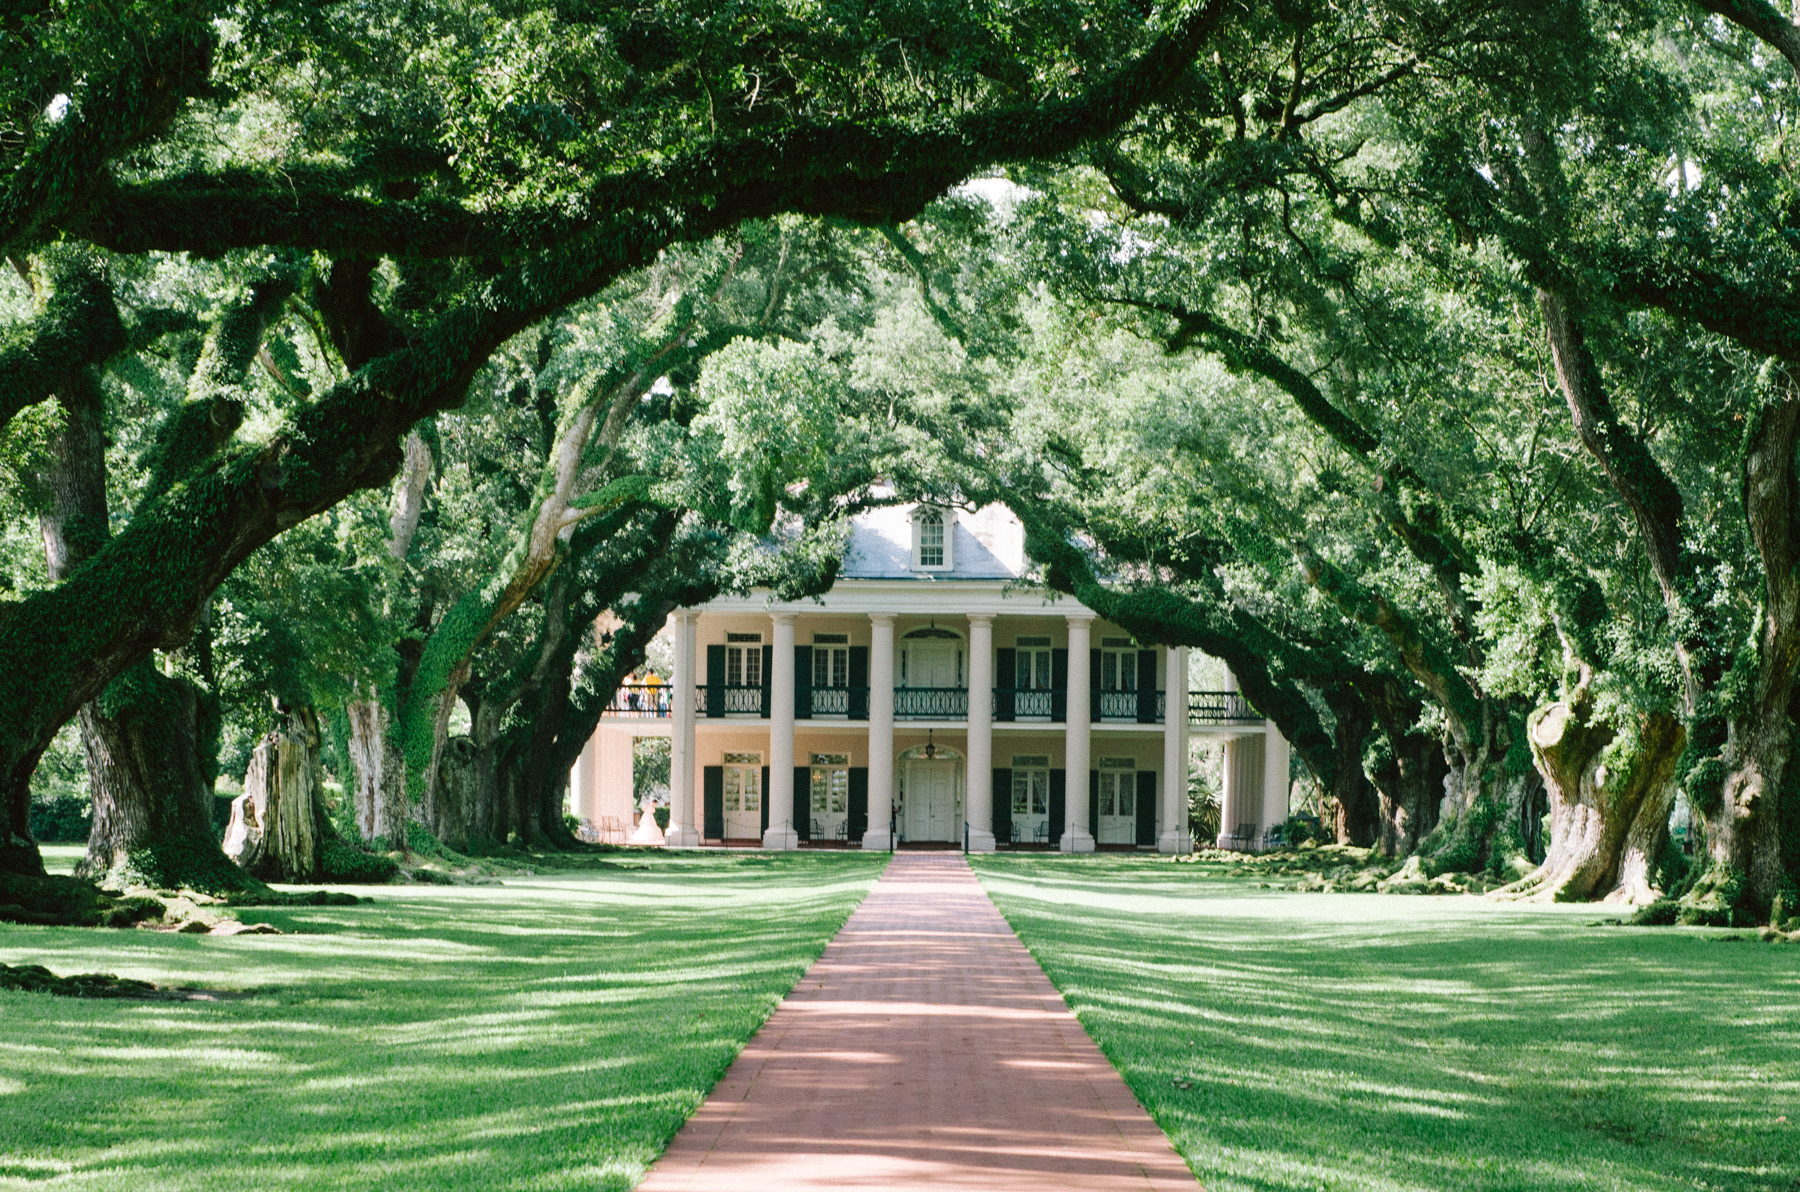 Louisiana roadside stop: Oak Alley - a beautiful plantation mansion (that doesn't gloss over its dark history) with a famous avenue of 300-year-old oaks.